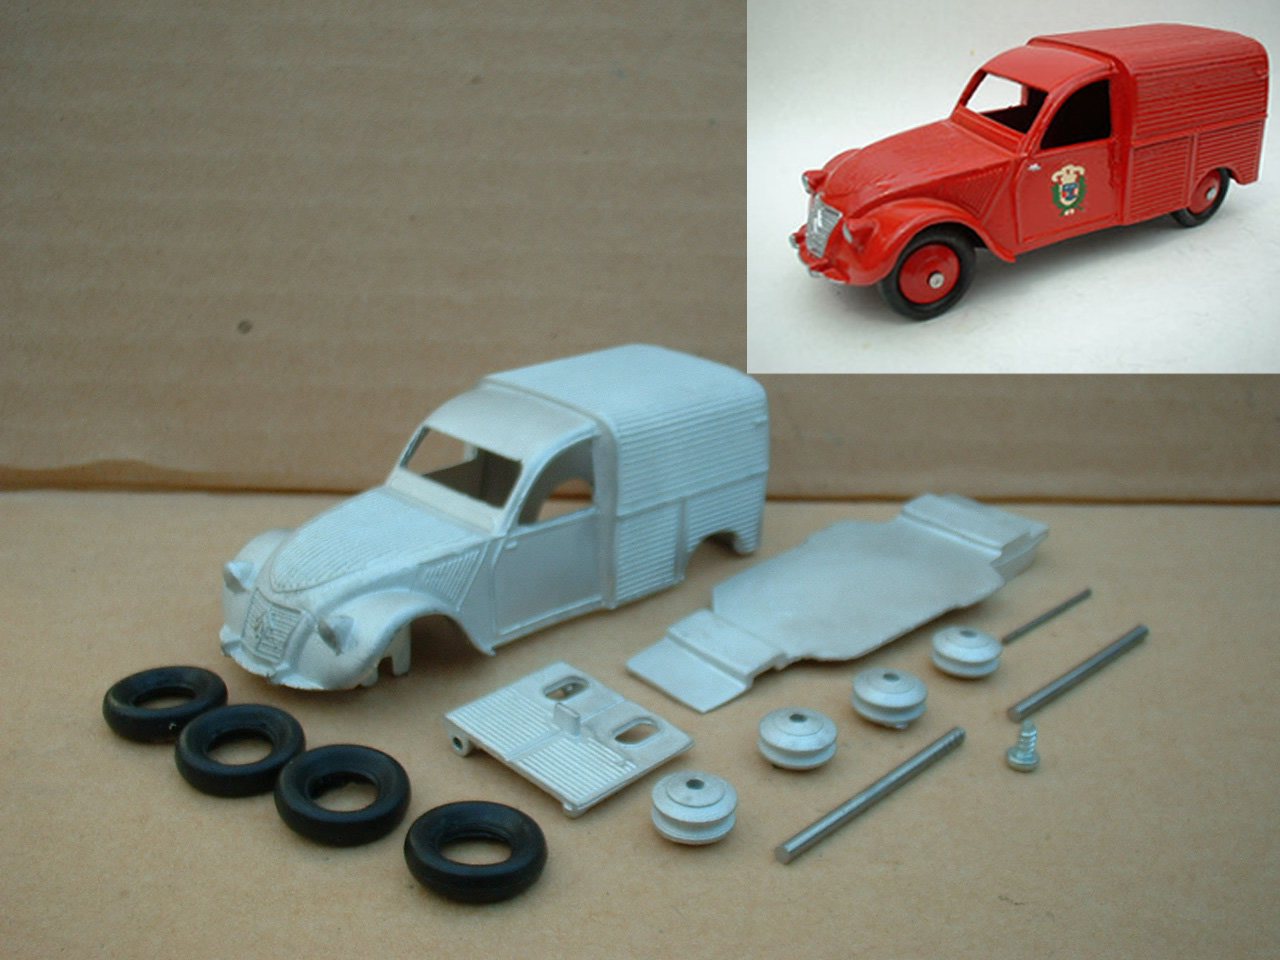 a dinky toys copy model 25d 2cv citroen fire incendie in kit form